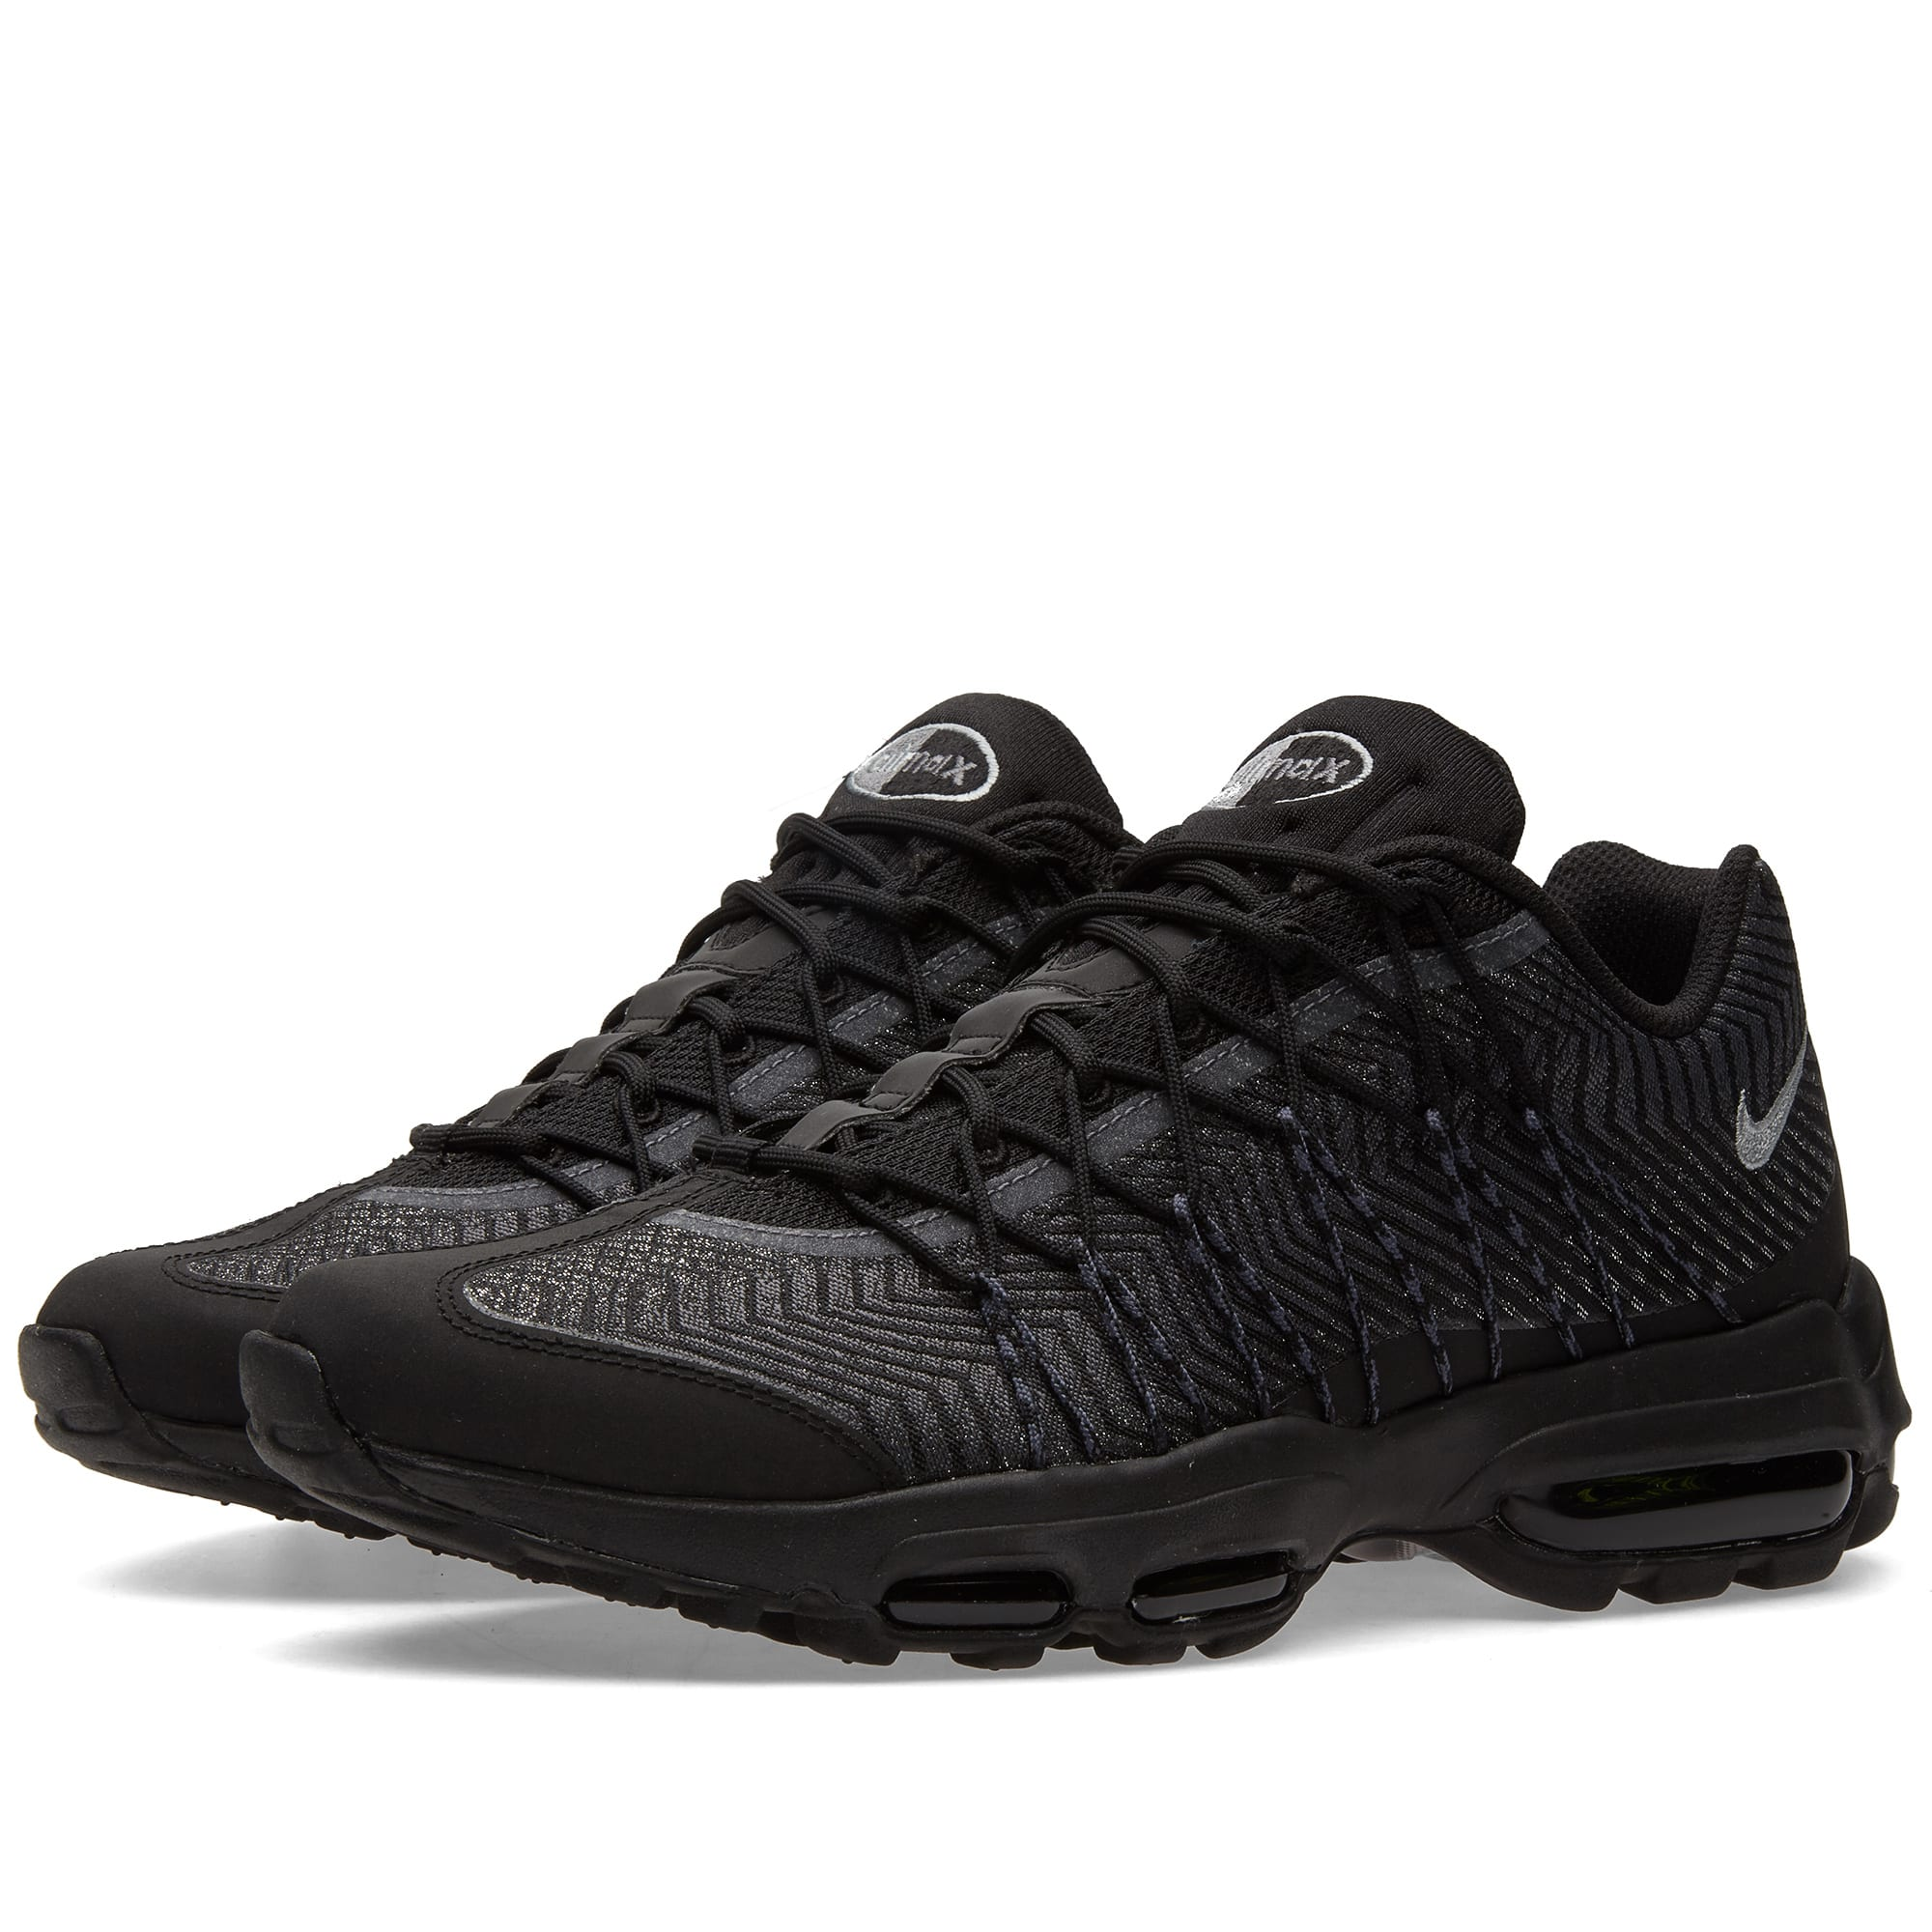 pretty nice 1fe42 acf0d Nike Air Max 95 Ultra JCRD Black, Silver   Dark Grey   END.